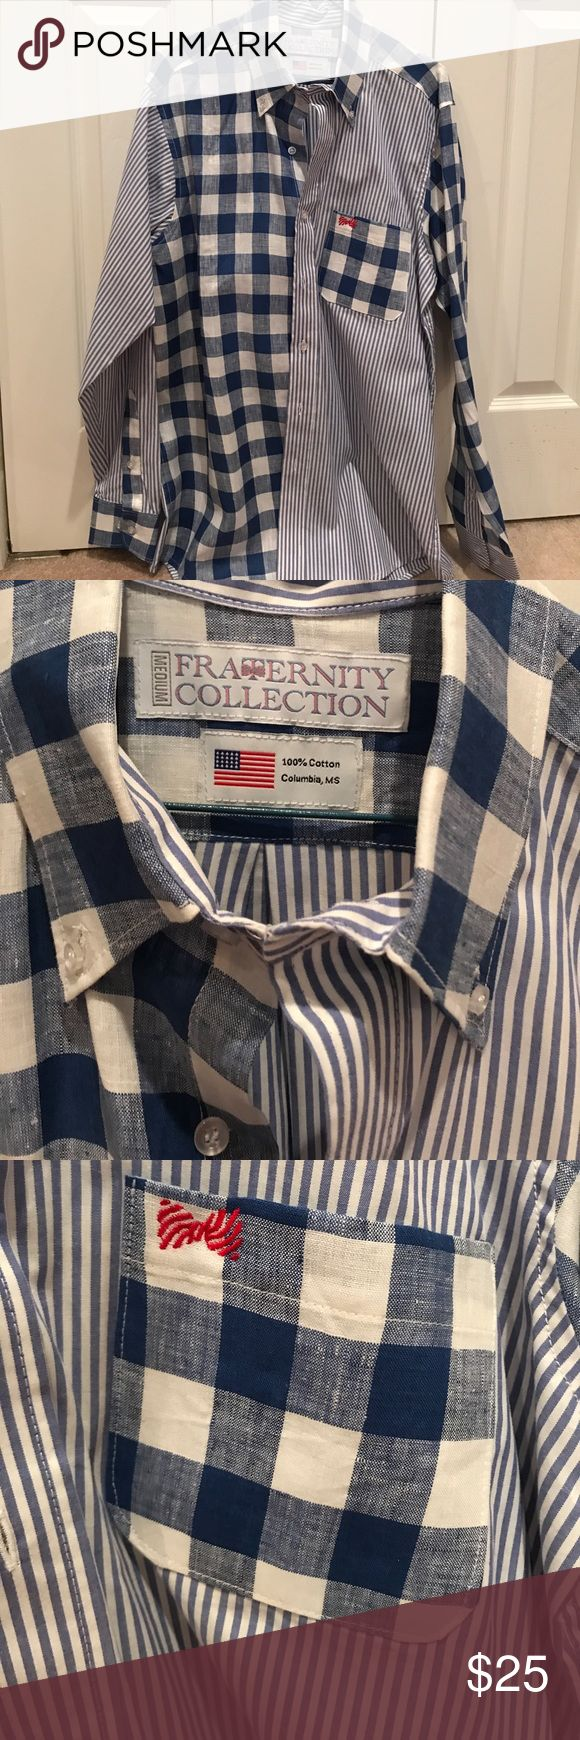 Fraternity Collection shirt Blue and white striped and checked Fraternity Collection Shirt. Never worn!! Made in the USA! Fraternity Collection Shirts Casual Button Down Shirts